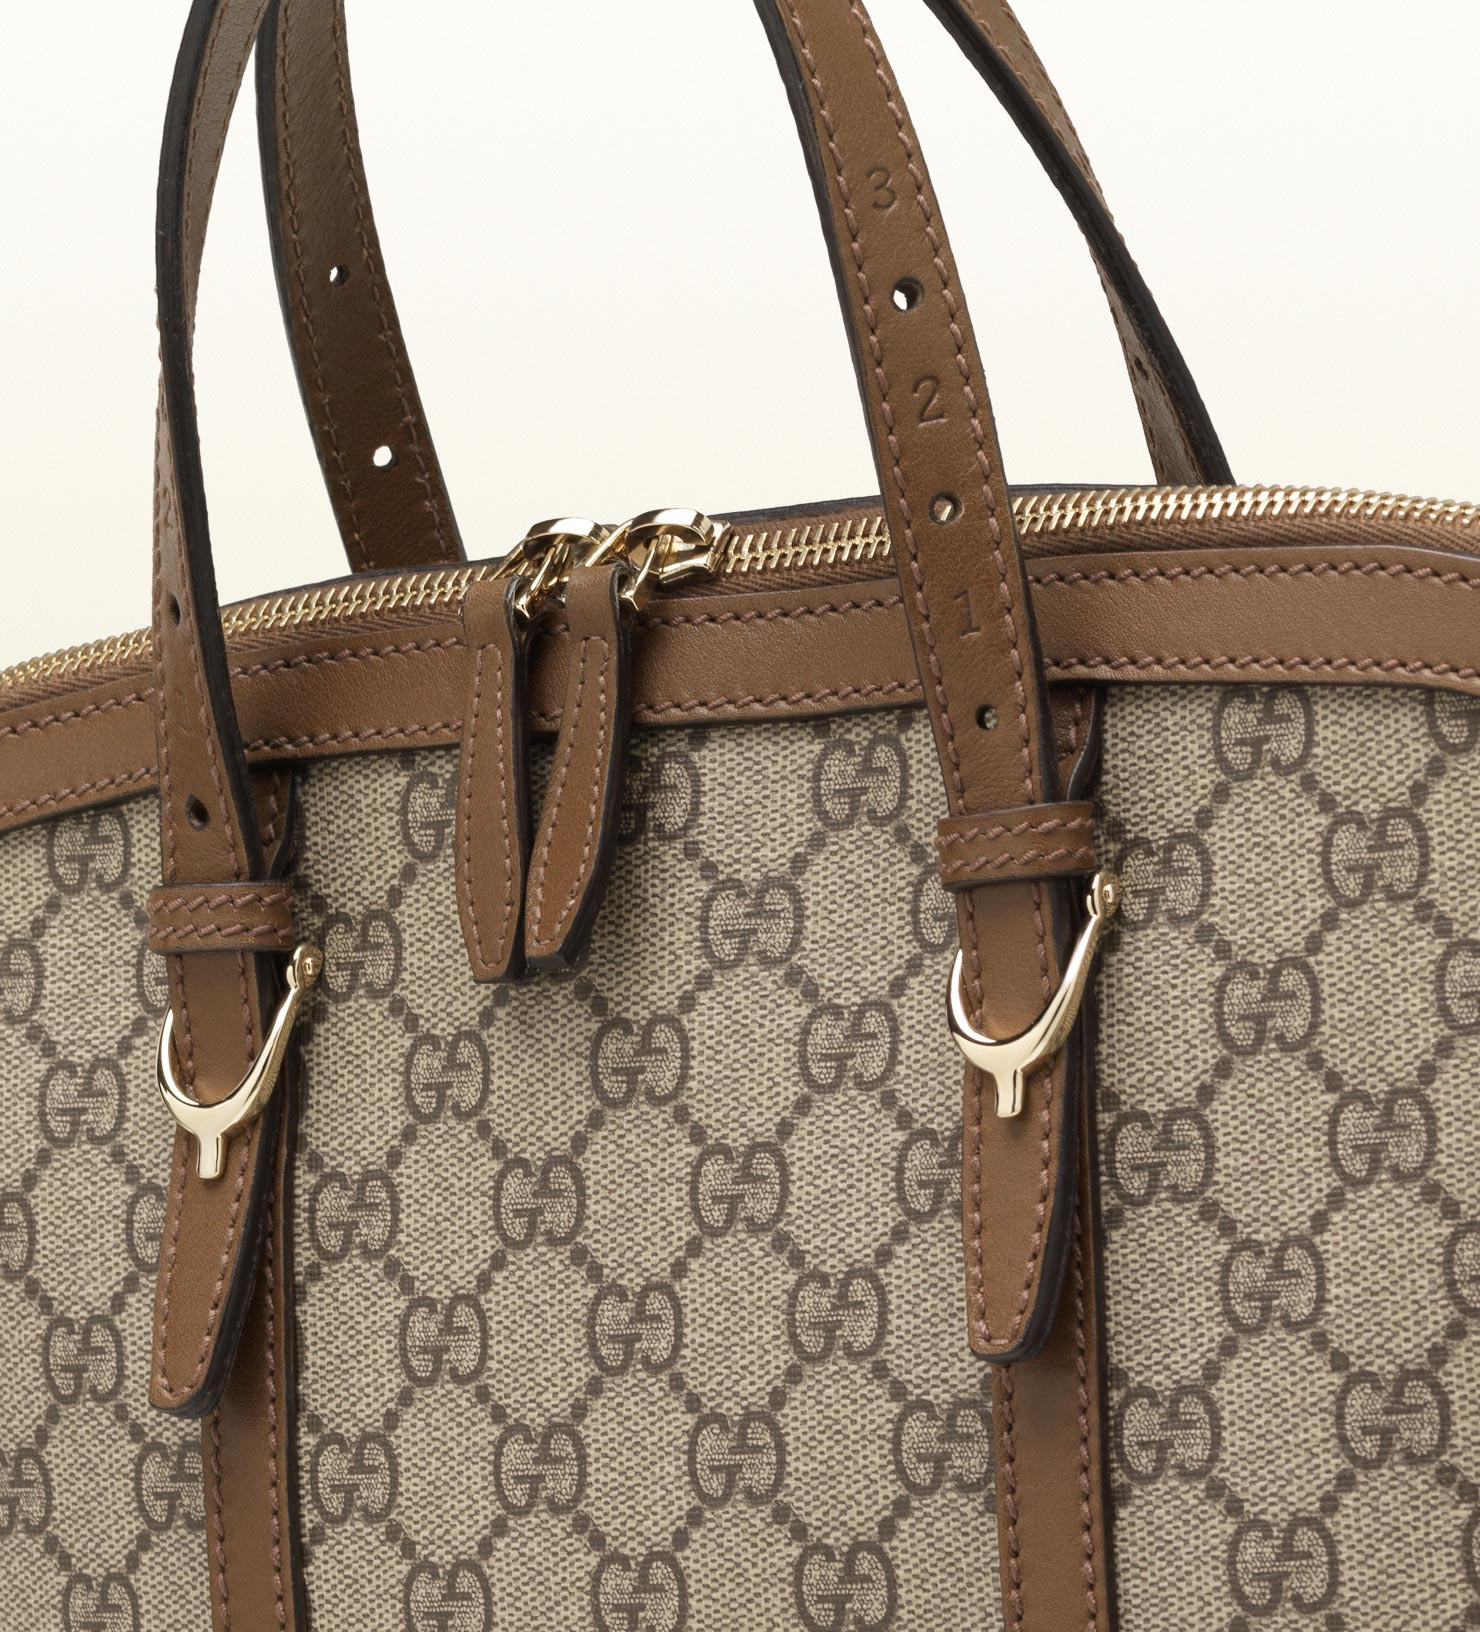 7e09b83098c6 Gucci Gucci Nice Gg Supreme Canvas Top Handle Bag in Brown - Lyst